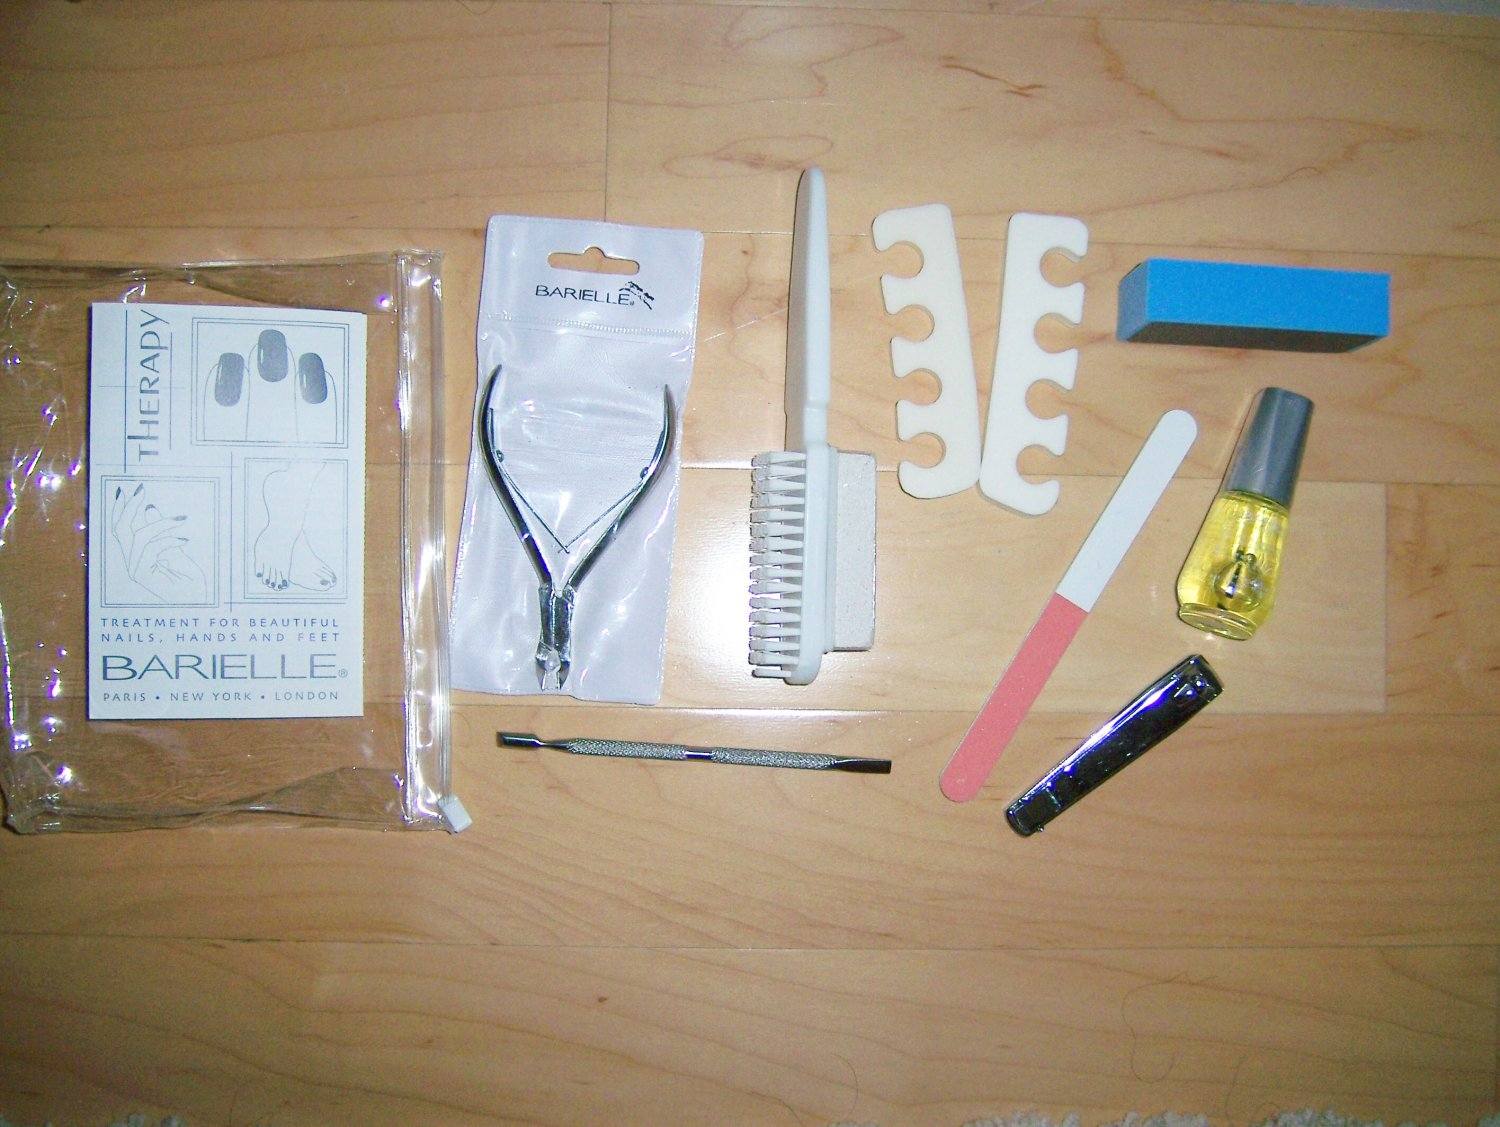 Tools For Nails,Hands & Feet Beauty Treatment BNK1172